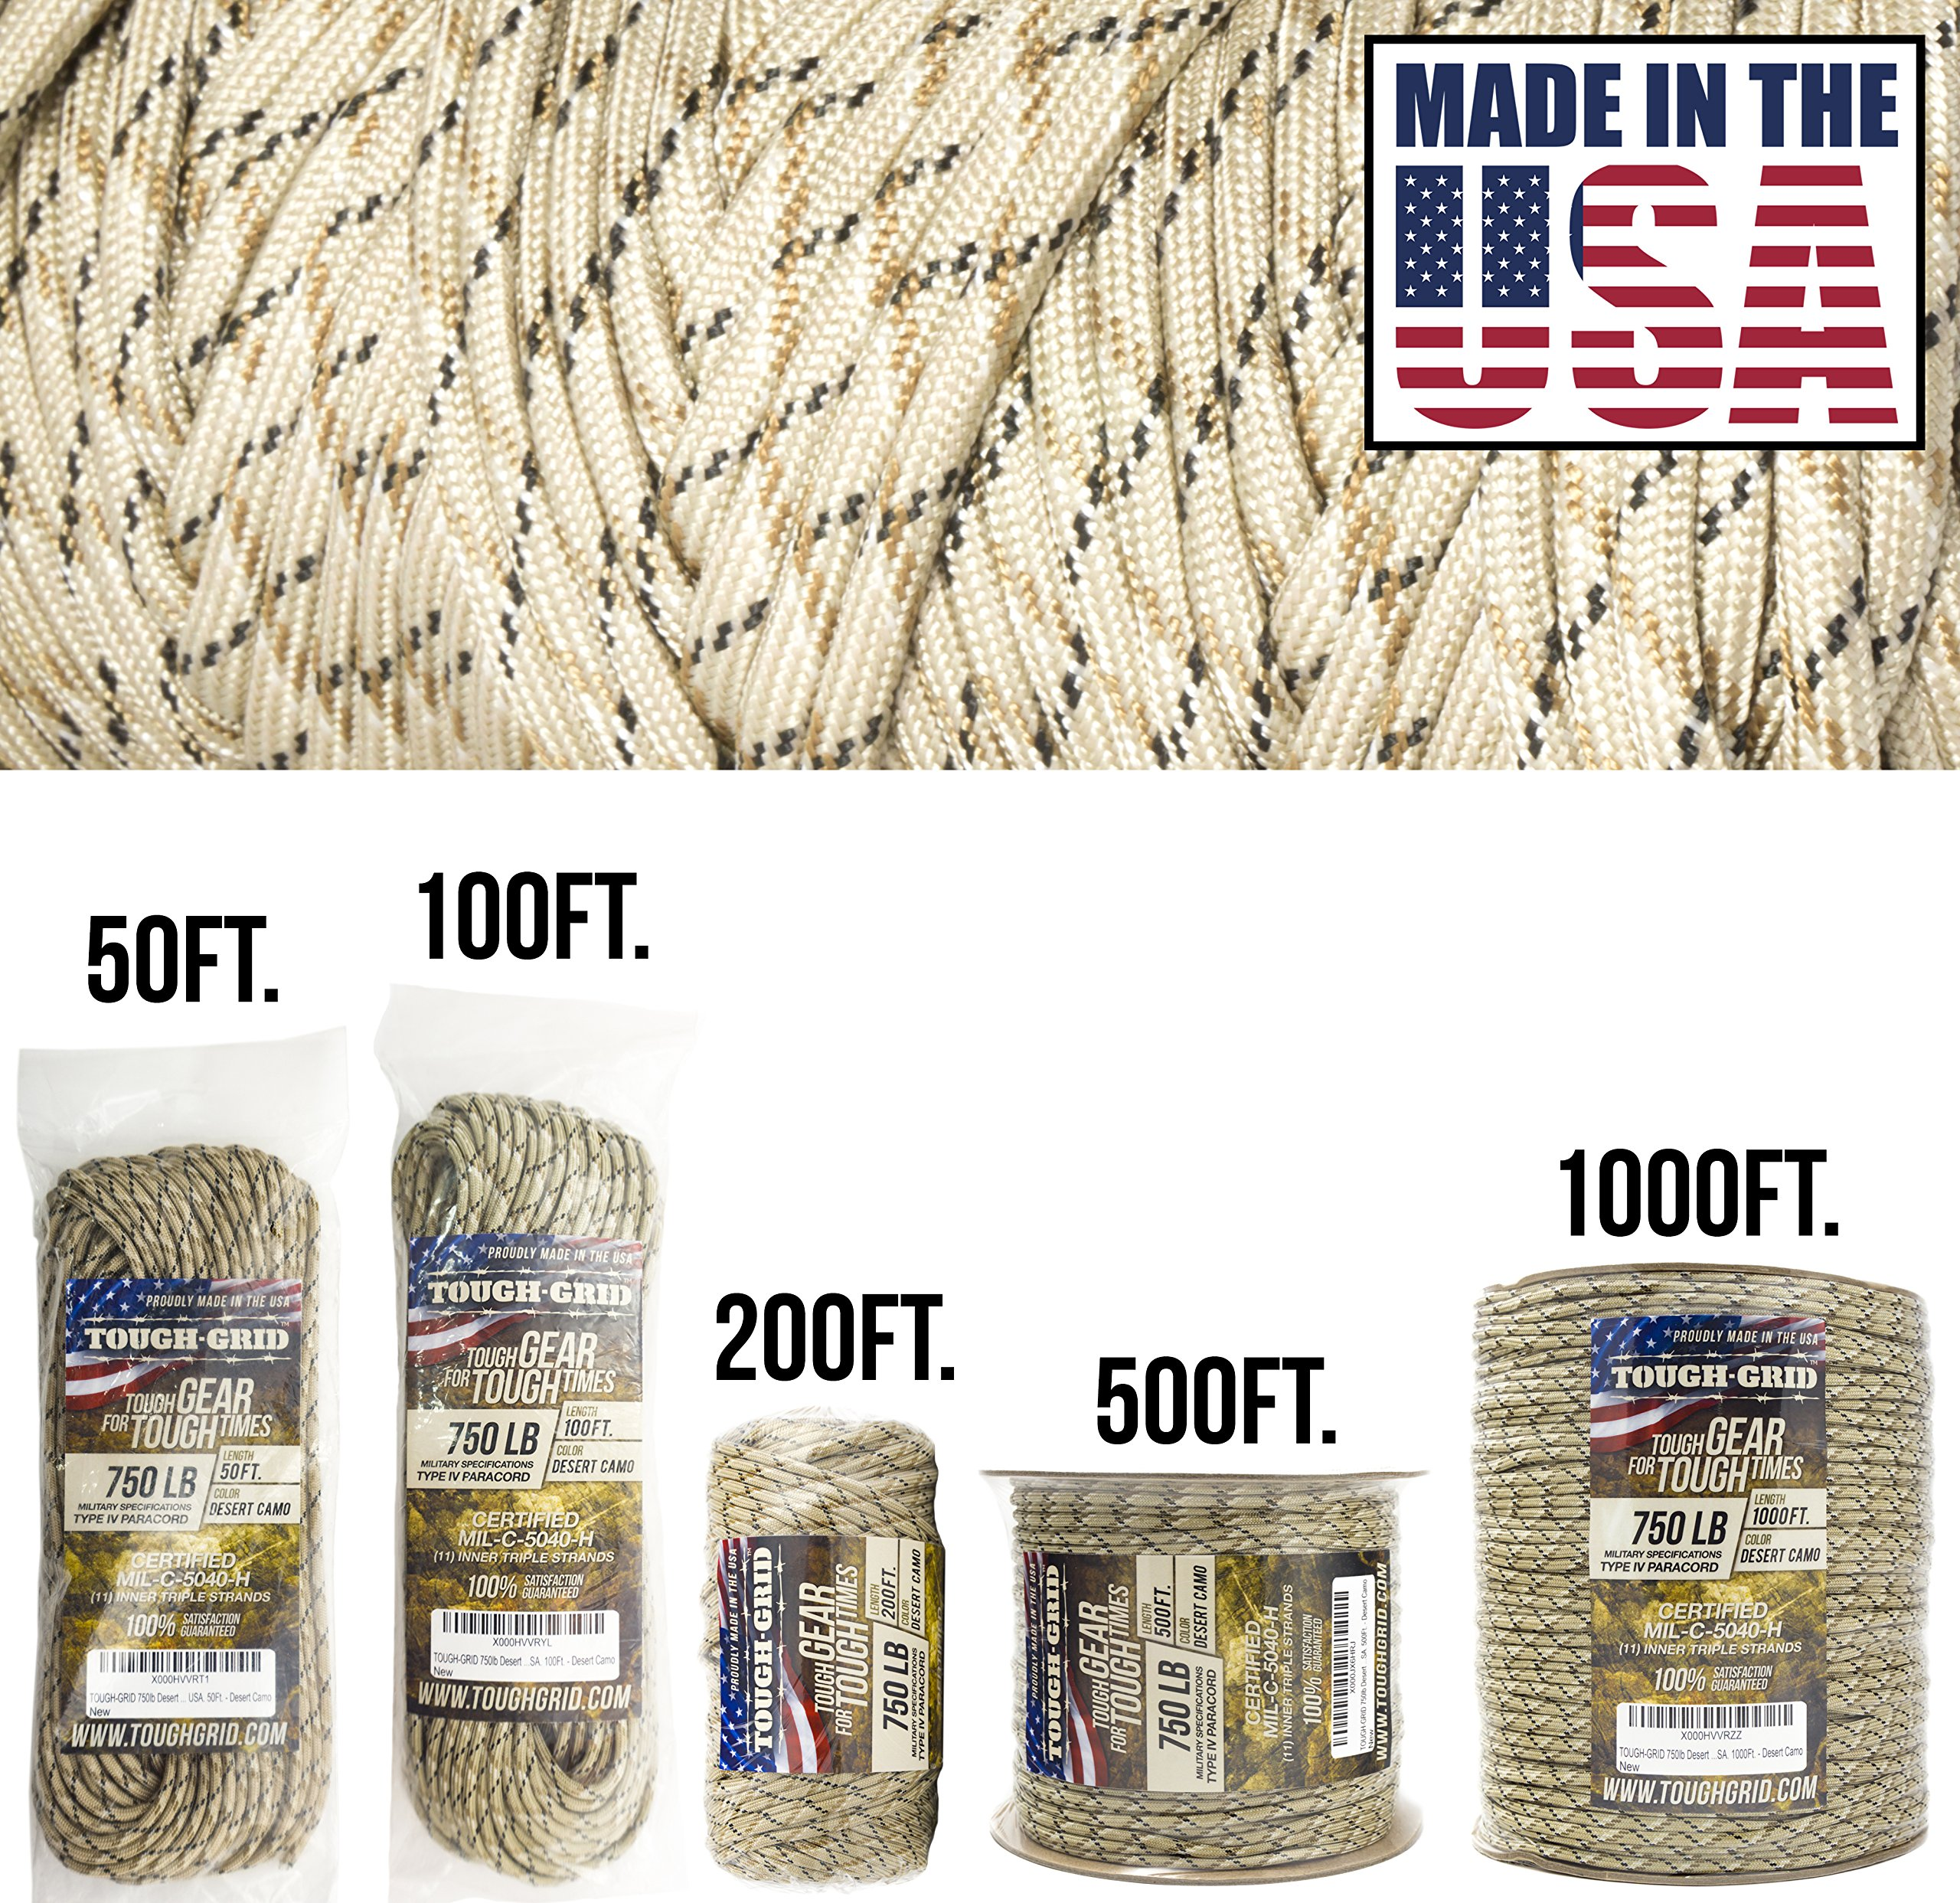 TOUGH-GRID 750lb Desert Camo Paracord/Parachute Cord - Genuine Mil Spec Type IV 750lb Paracord Used by The US Military (MIl-C-5040-H) - 100% Nylon - Made in The USA. 50Ft. - Desert Camo